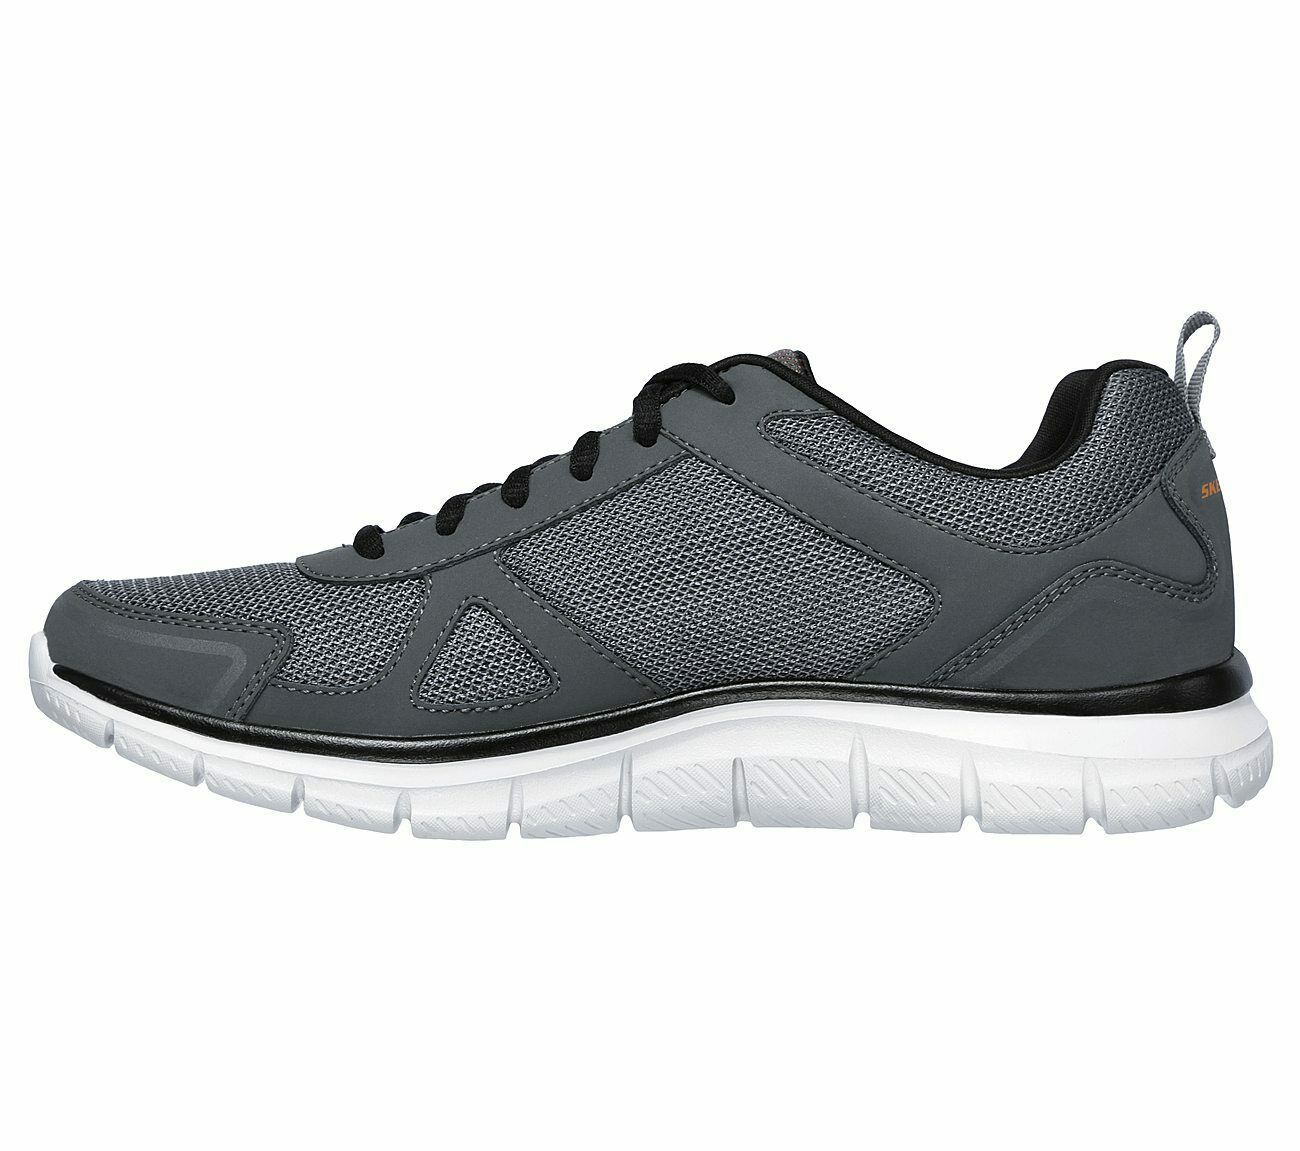 Skechers Men's Memory Foam shoes Charcoal Sport Comfort Train Mesh Sneaker 52631